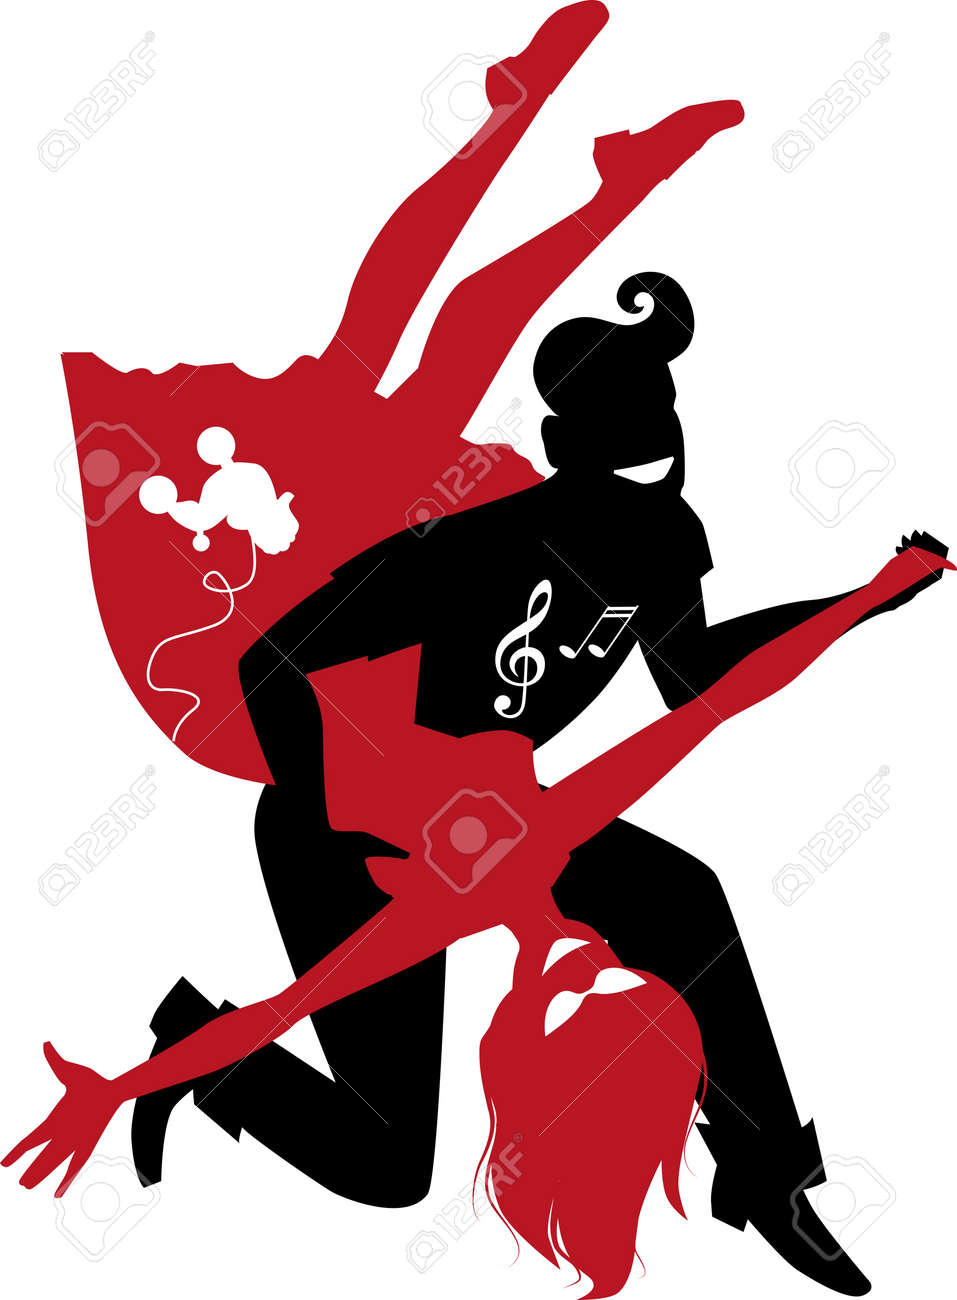 hight resolution of red and black silhouette of a couple dancing 1950s style rock and roll no white objects